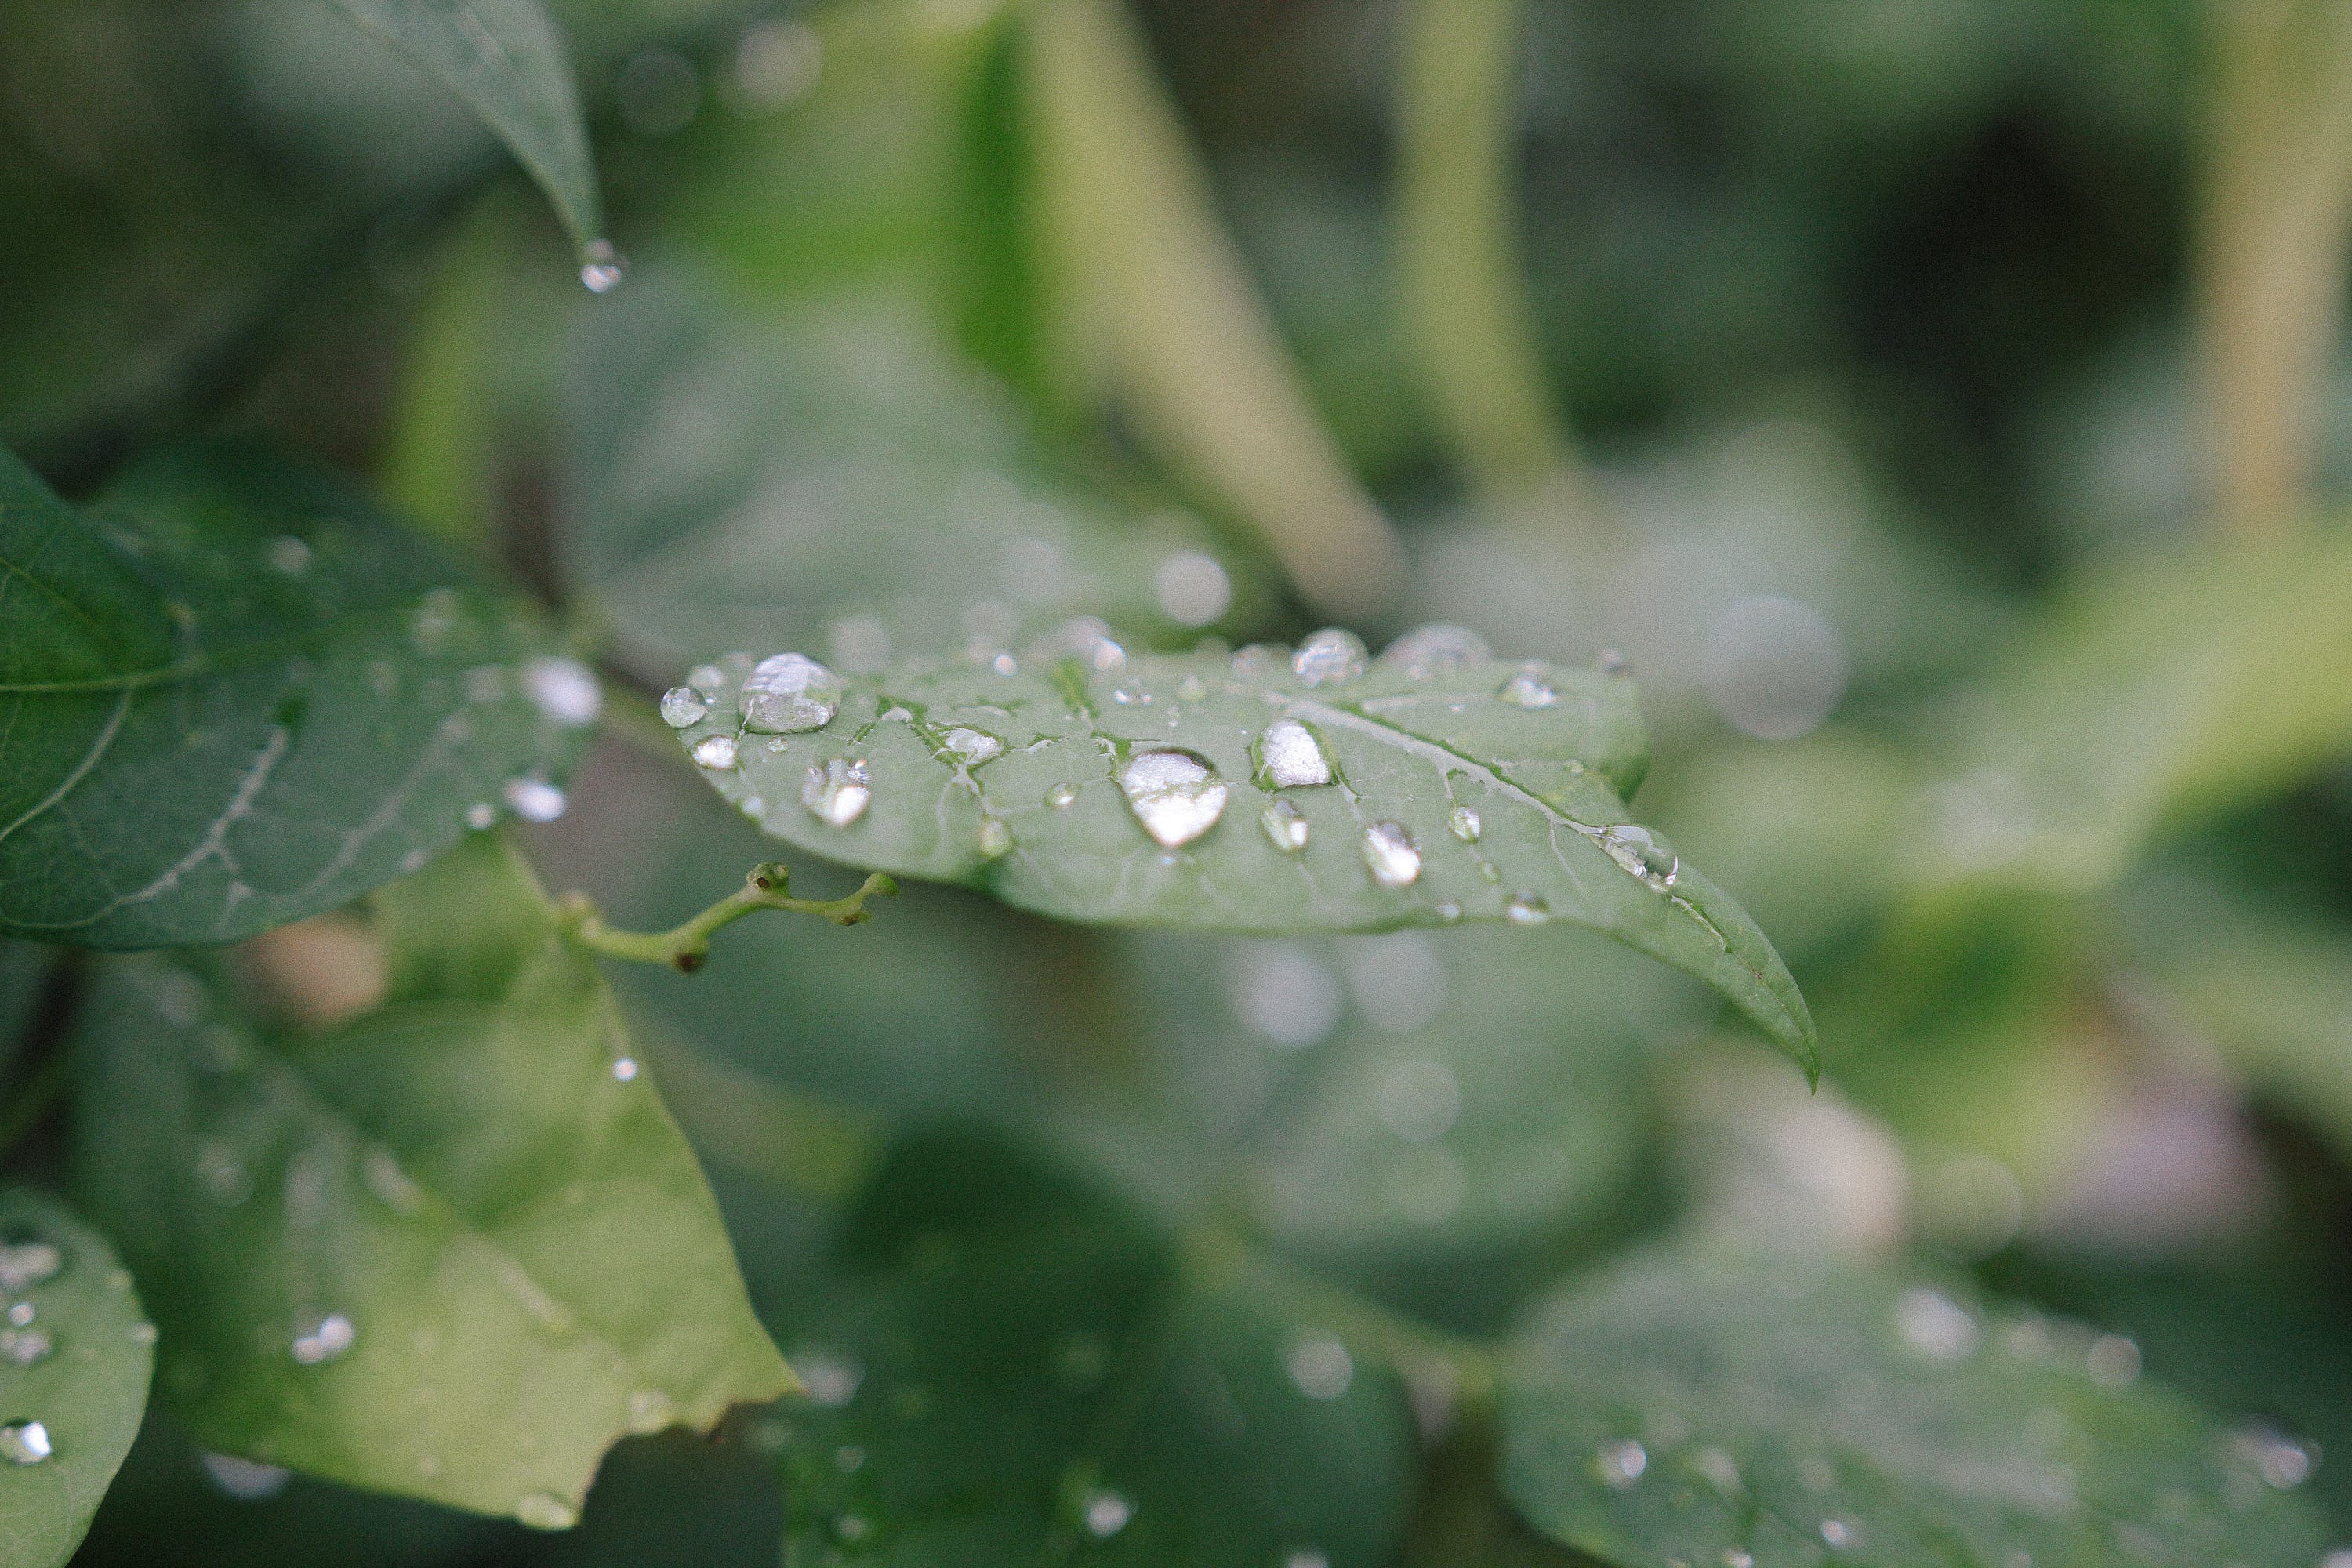 Bokeh Photography of Green Leaf